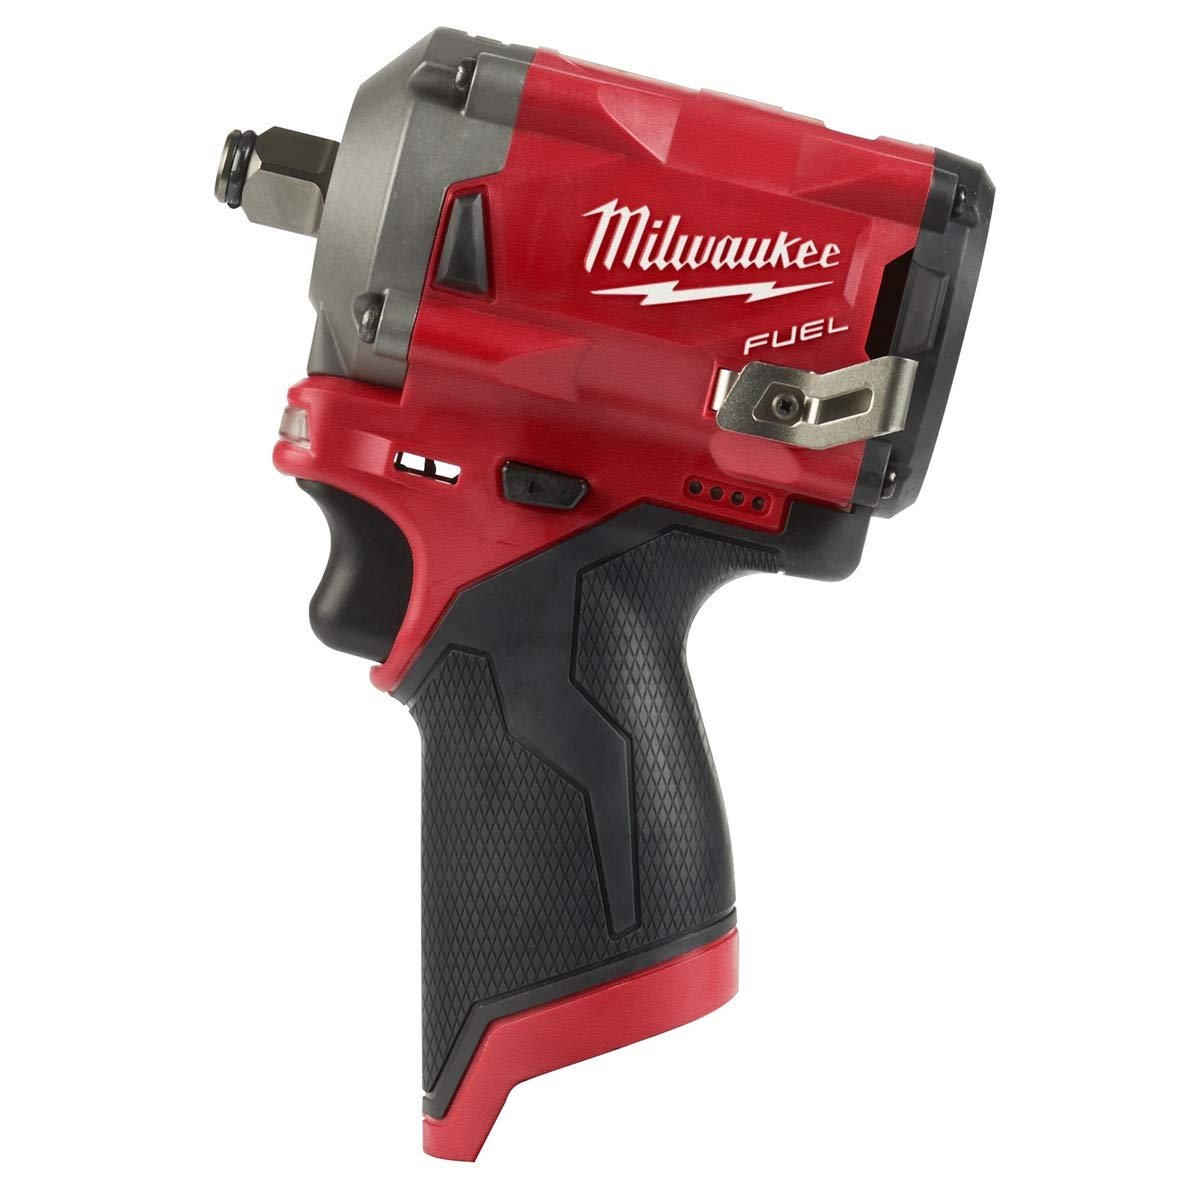 Milwaukee 2555-20 M12 FUEL Stubby 1/2'' Impact Wrench (Bare Tool Only)